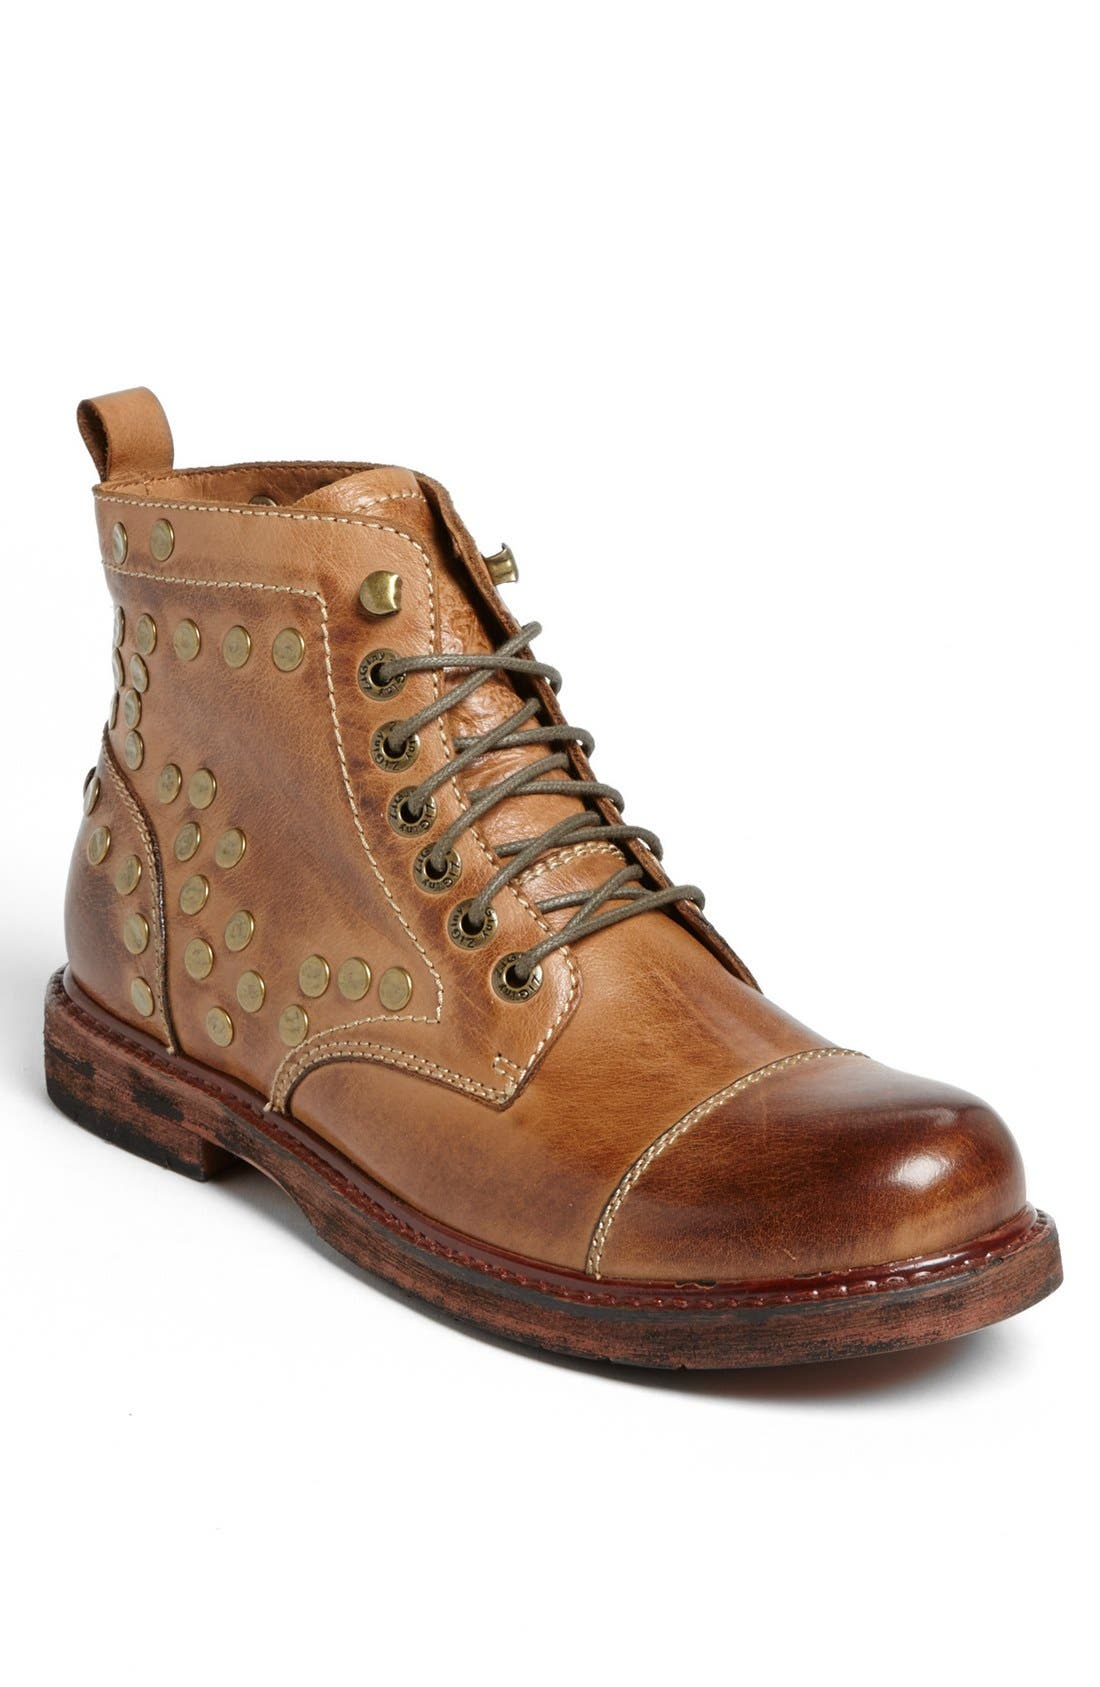 Alternate Image 1 Selected - ZIGIny 'Penn' Cap Toe Boot